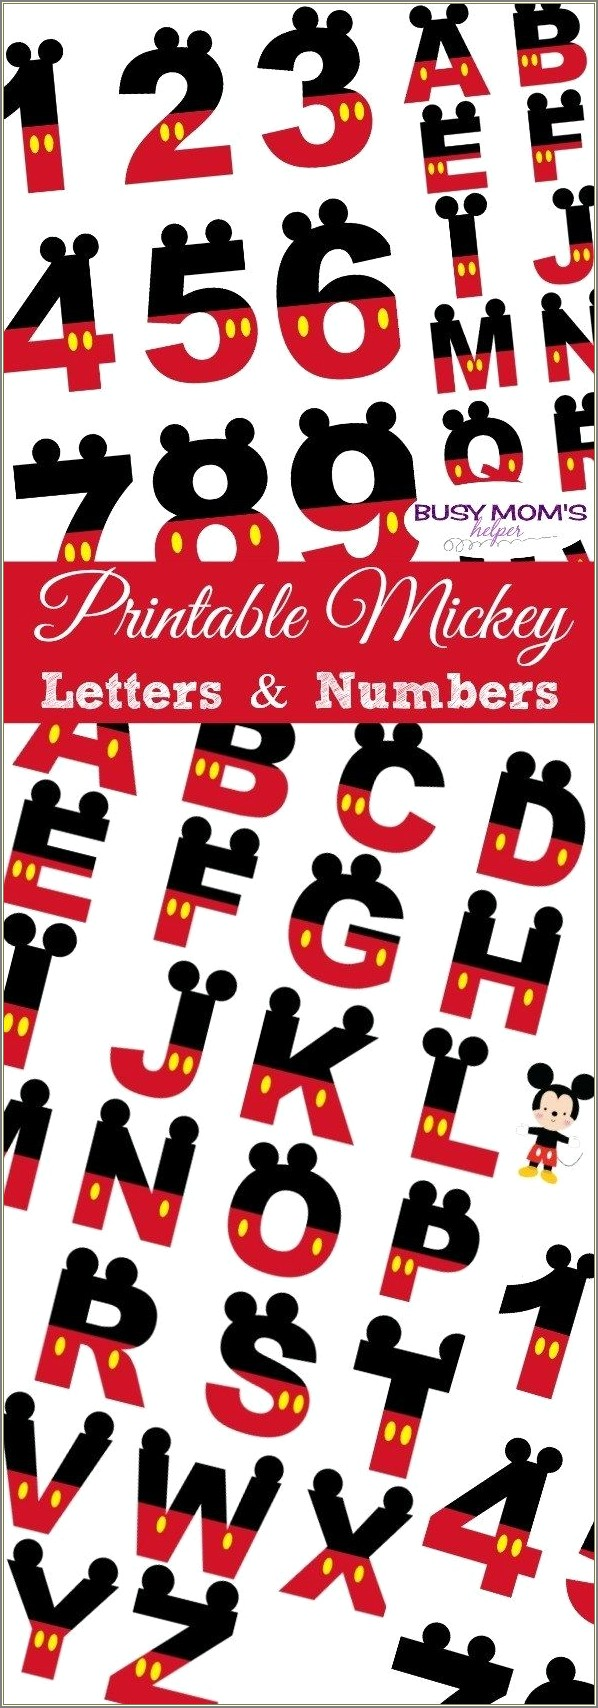 Cut Out Mickey Mouse Letters Printable